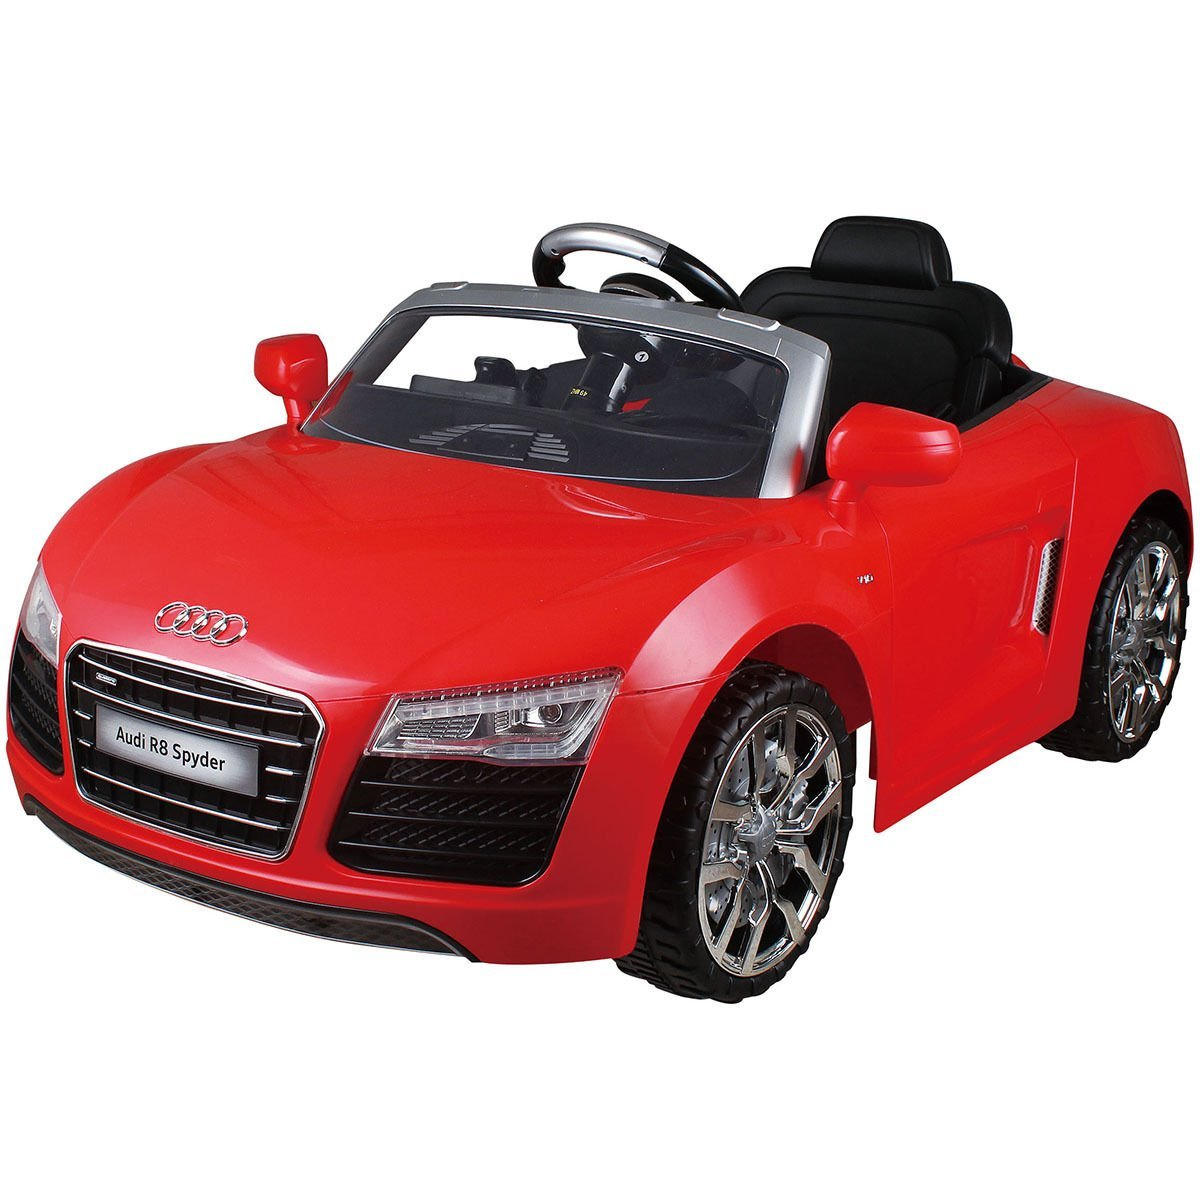 Amazon Com Costzon Audi R8 Spyder 12v Electric Kids Ride On Car